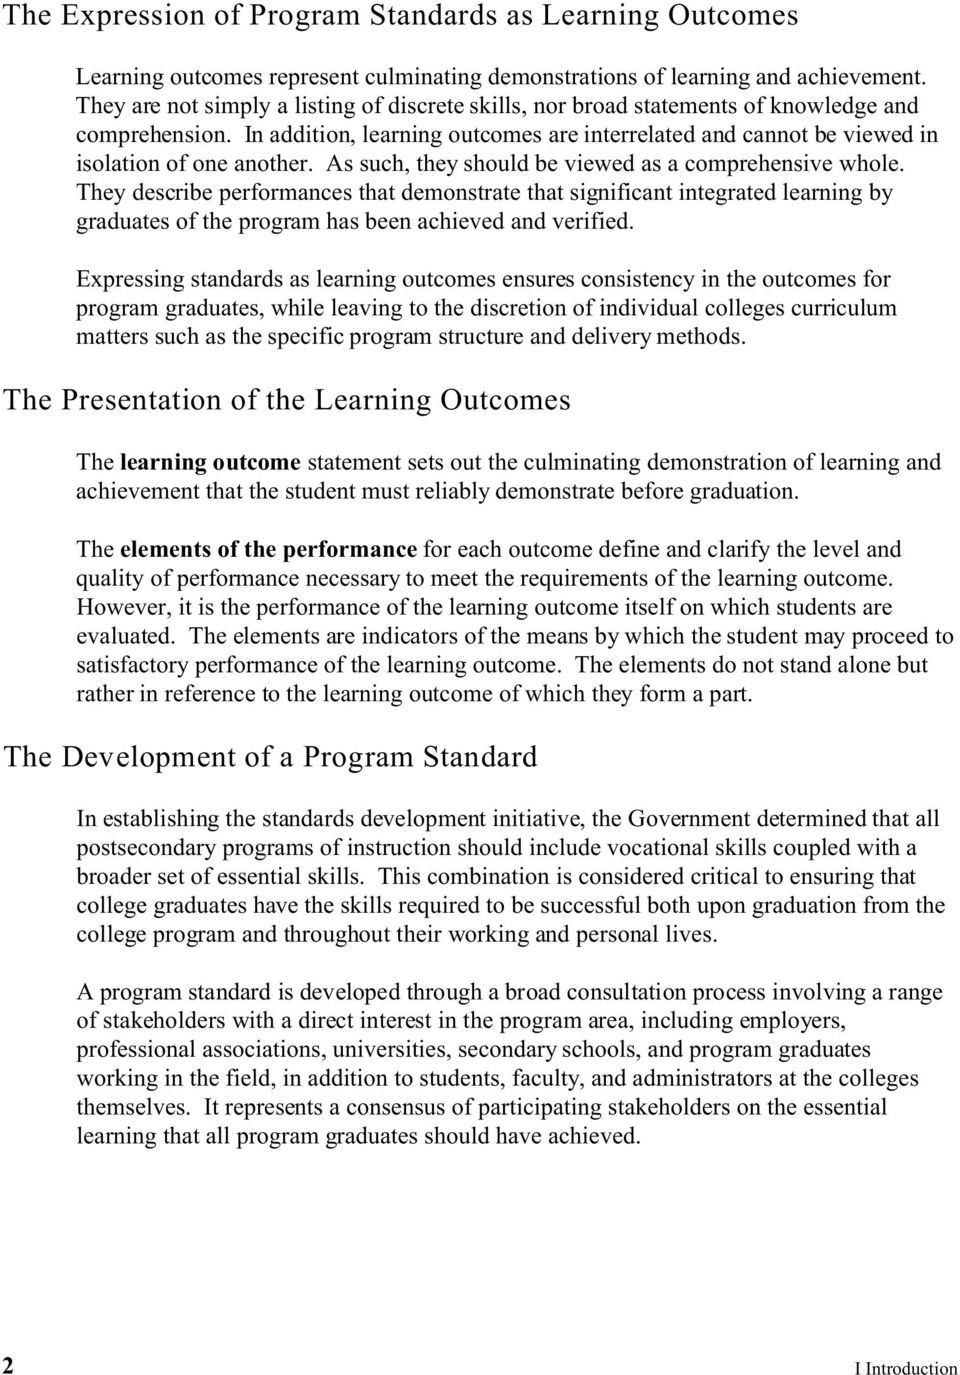 As such, they should be viewed as a comprehensive whole. They describe performances that demonstrate that significant integrated learning by graduates of the program has been achieved and verified.